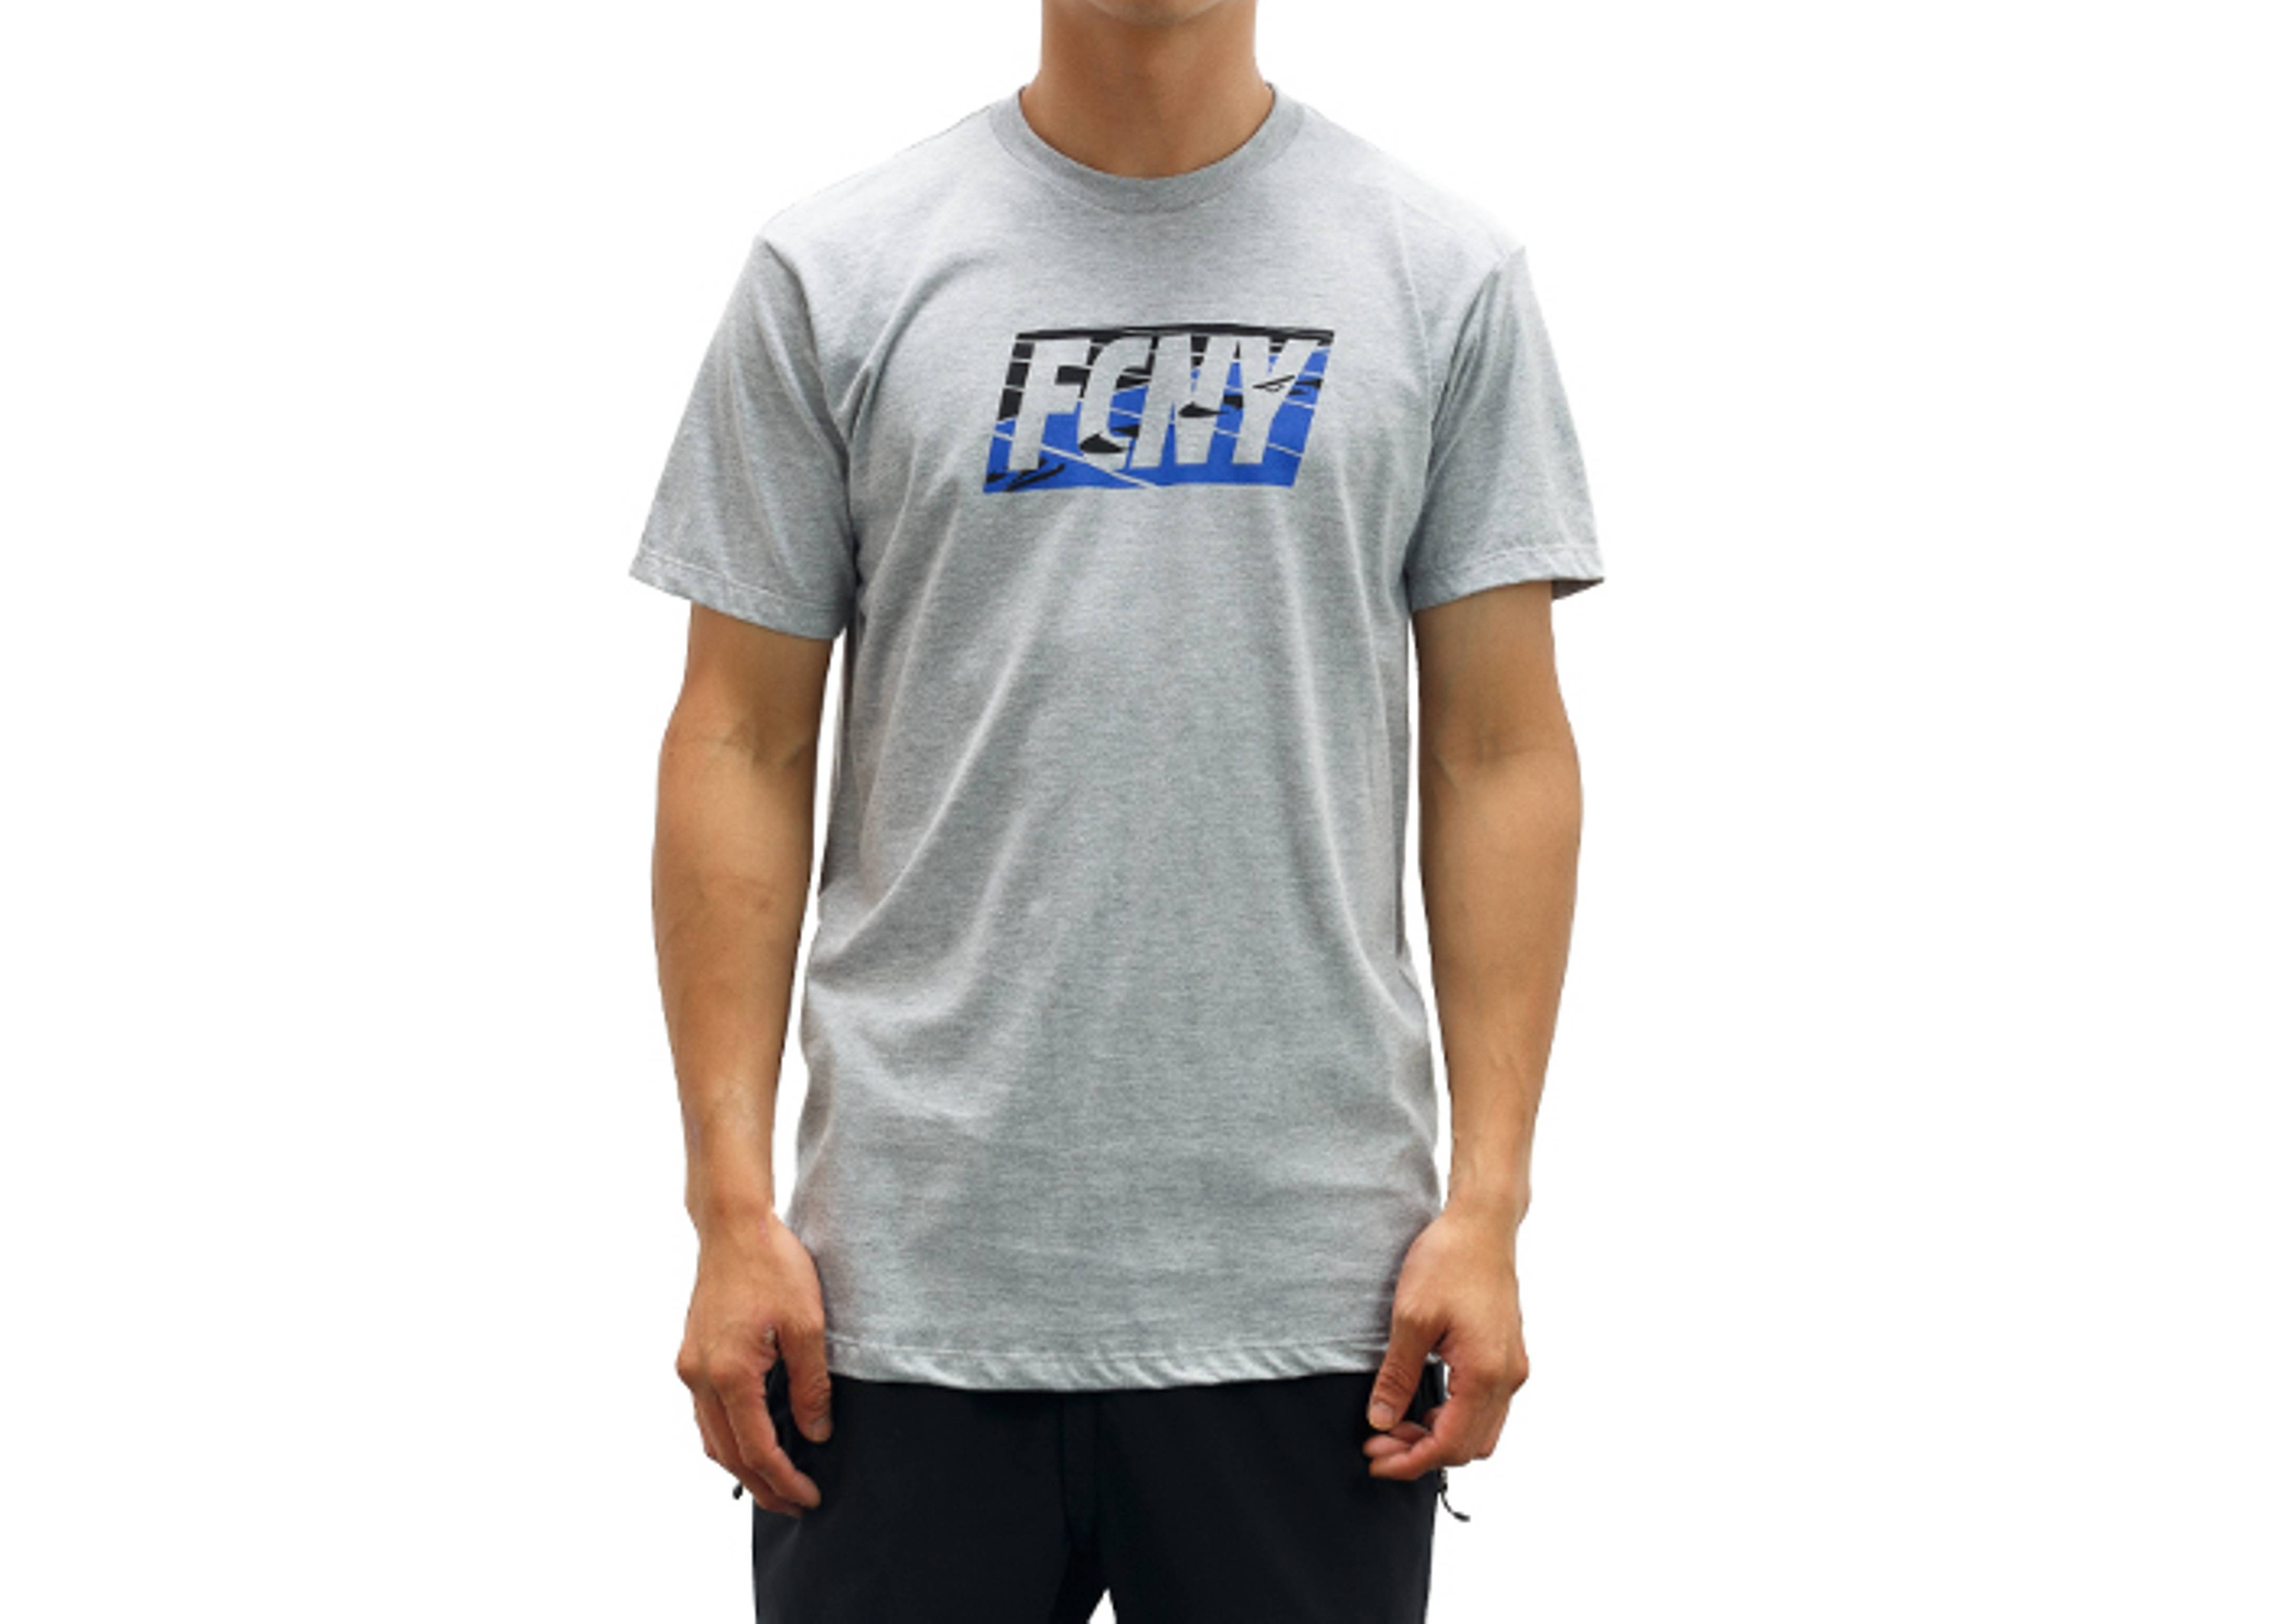 fcny track t-shirt